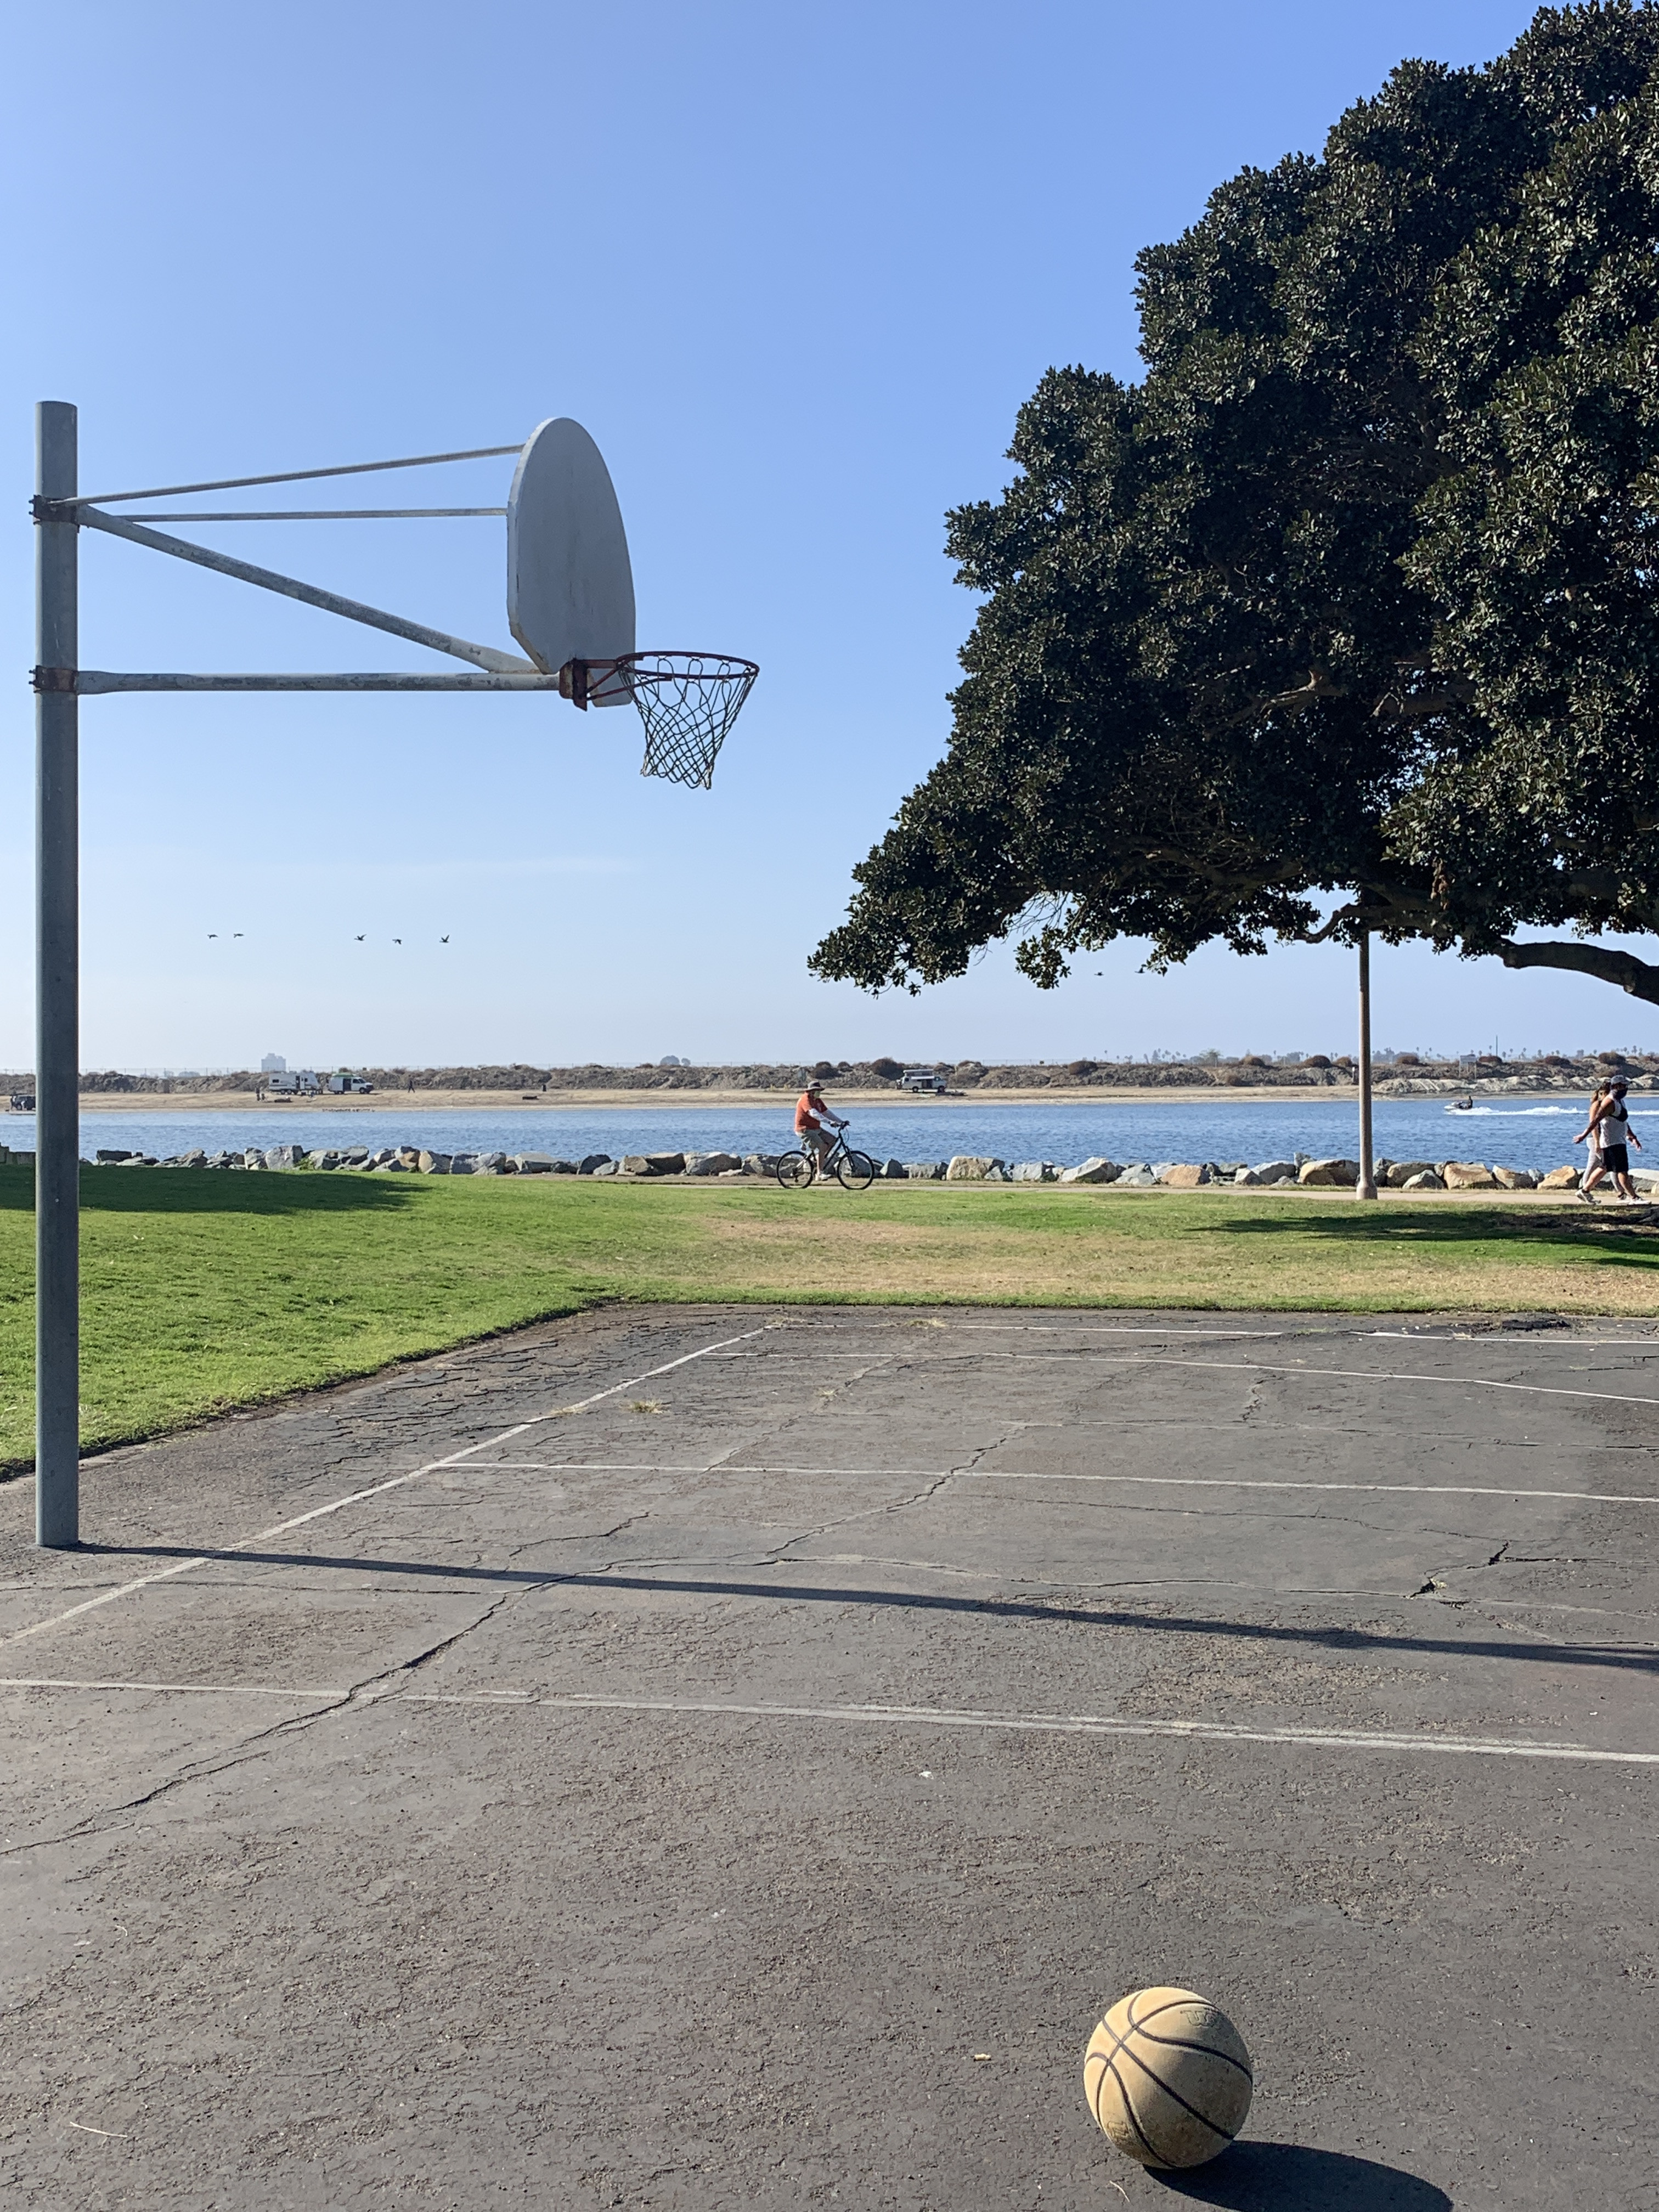 San Diego Ca Basketball Court Mission Bay Park Courts Of The World